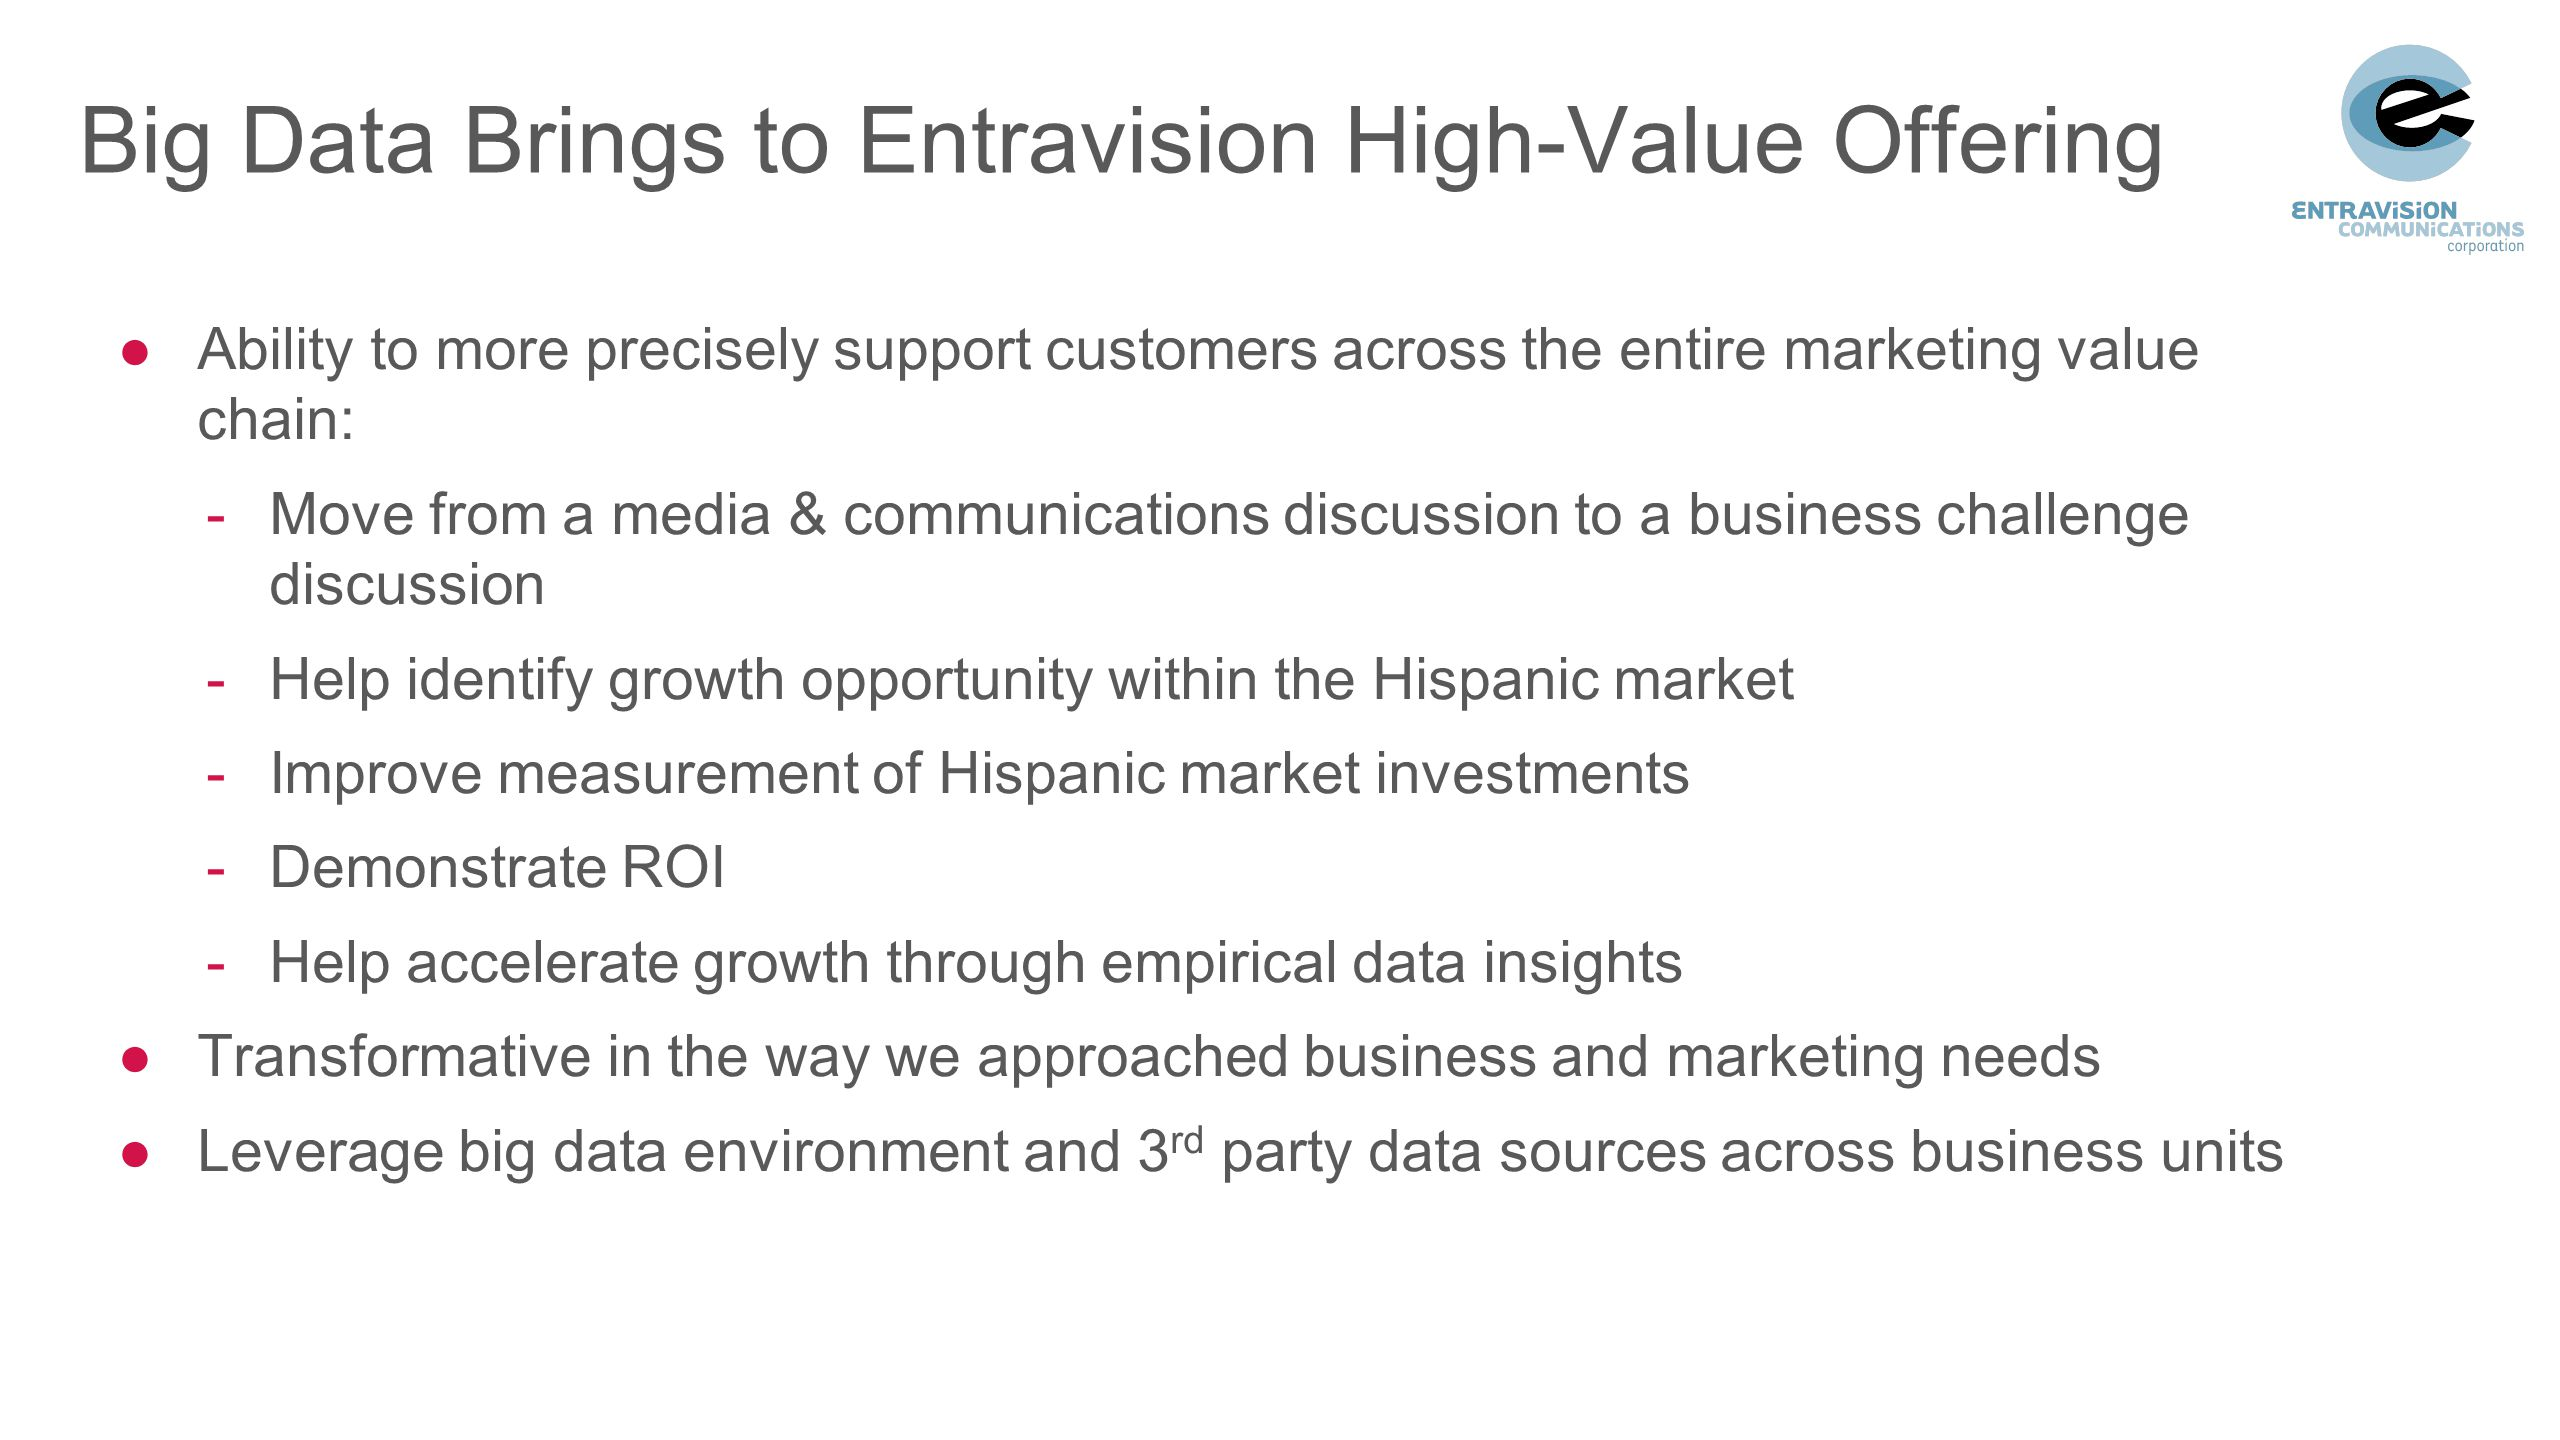 Big Data Brings to Entravision High-Value Offering